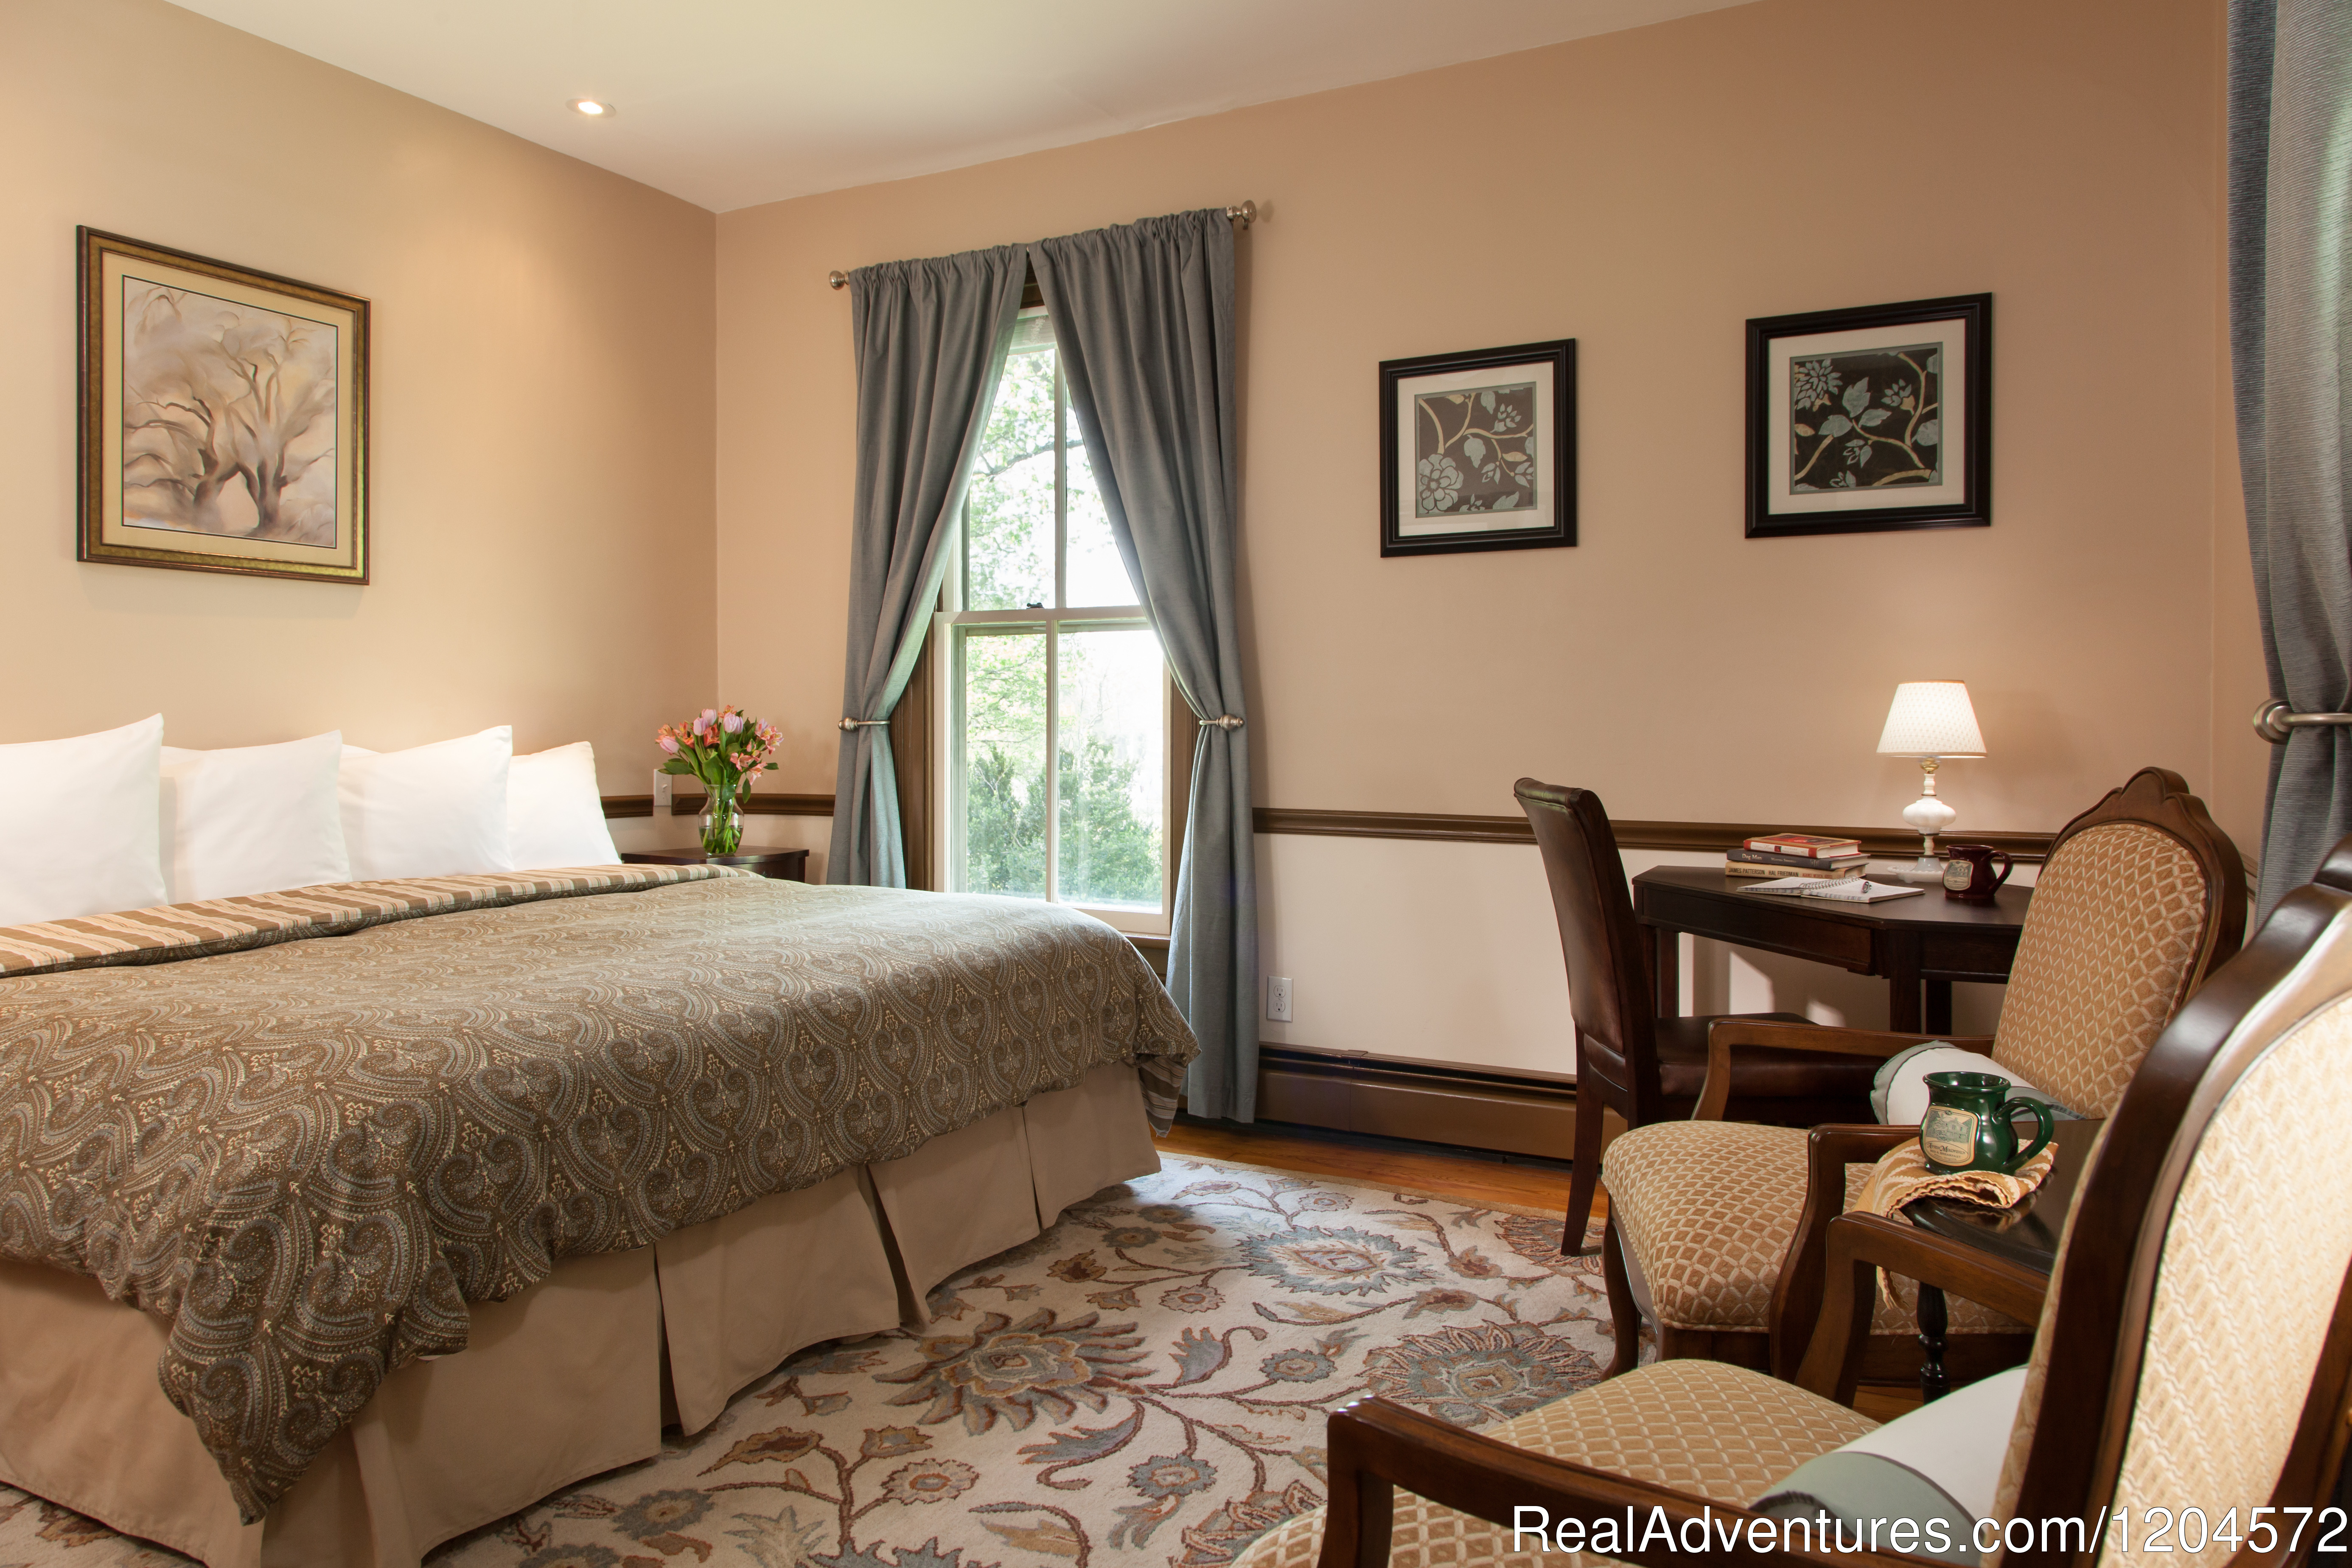 Goodwin Room | Image #1/5 | Afton, Virginia  | Bed & Breakfasts | Afton Mountain Bed & Breakfast